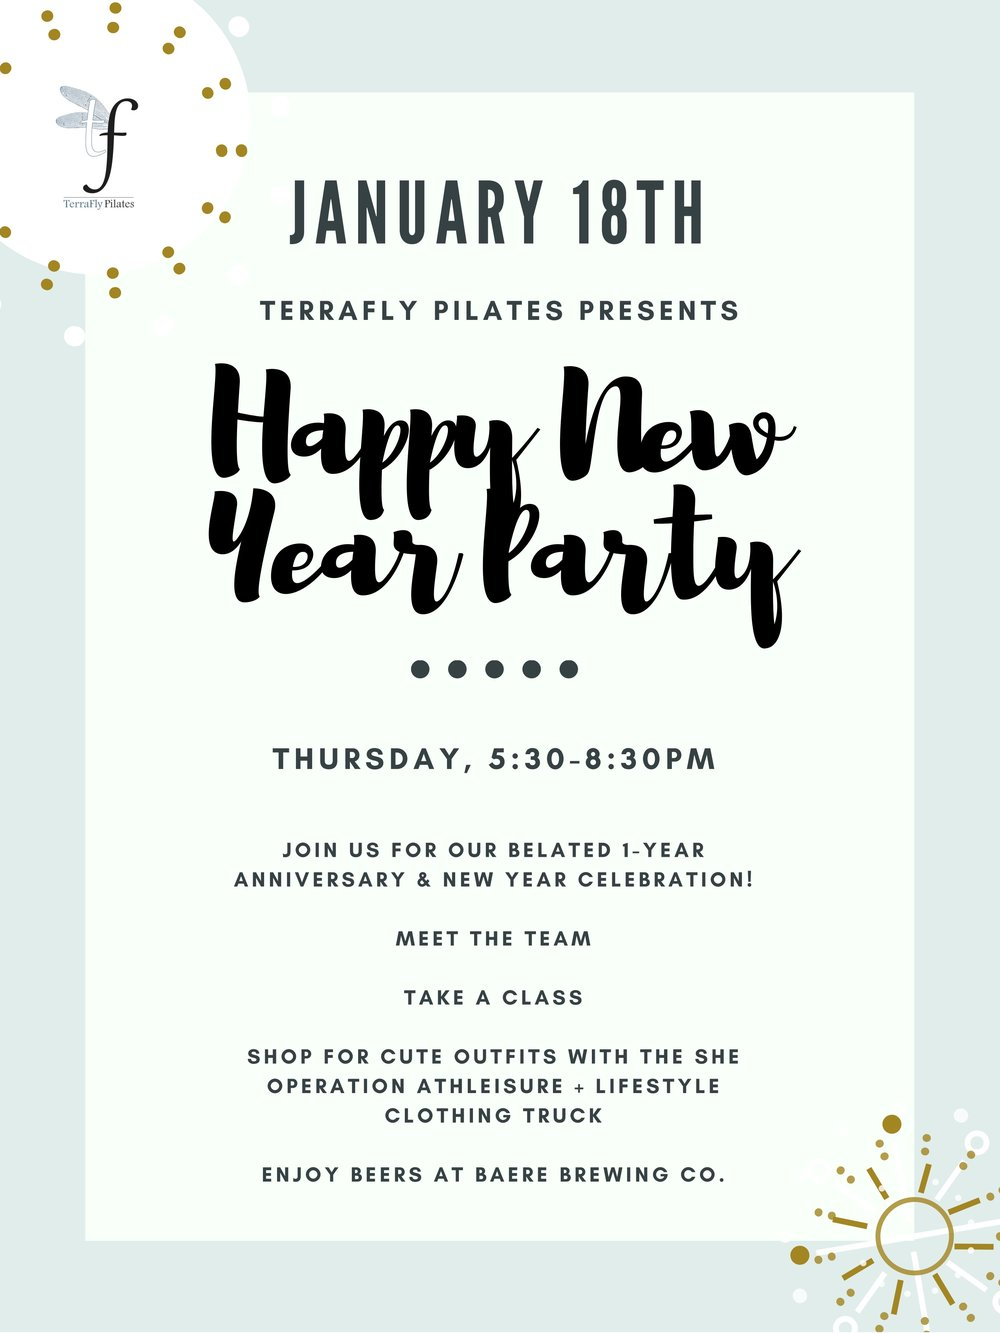 Join us on  Thursday, January 18th from 5:30-8:30pm  to celebrate our one year anniversary and the new year! We'll have equipment demos and shopping with The She Operation followed by beers at Baere Brewing Co. (one block south).   The SHE Operation is an athleisure + lifestyle boutique on wheels. SHE rolls just like you… on the go. SHE offers women's everyday casual but chic athleisure wear and lifestyle goods. Her timeless, versatile pieces are hand picked to effortlessly make you feel like the unapologetic, unstoppable SHEro that you are!